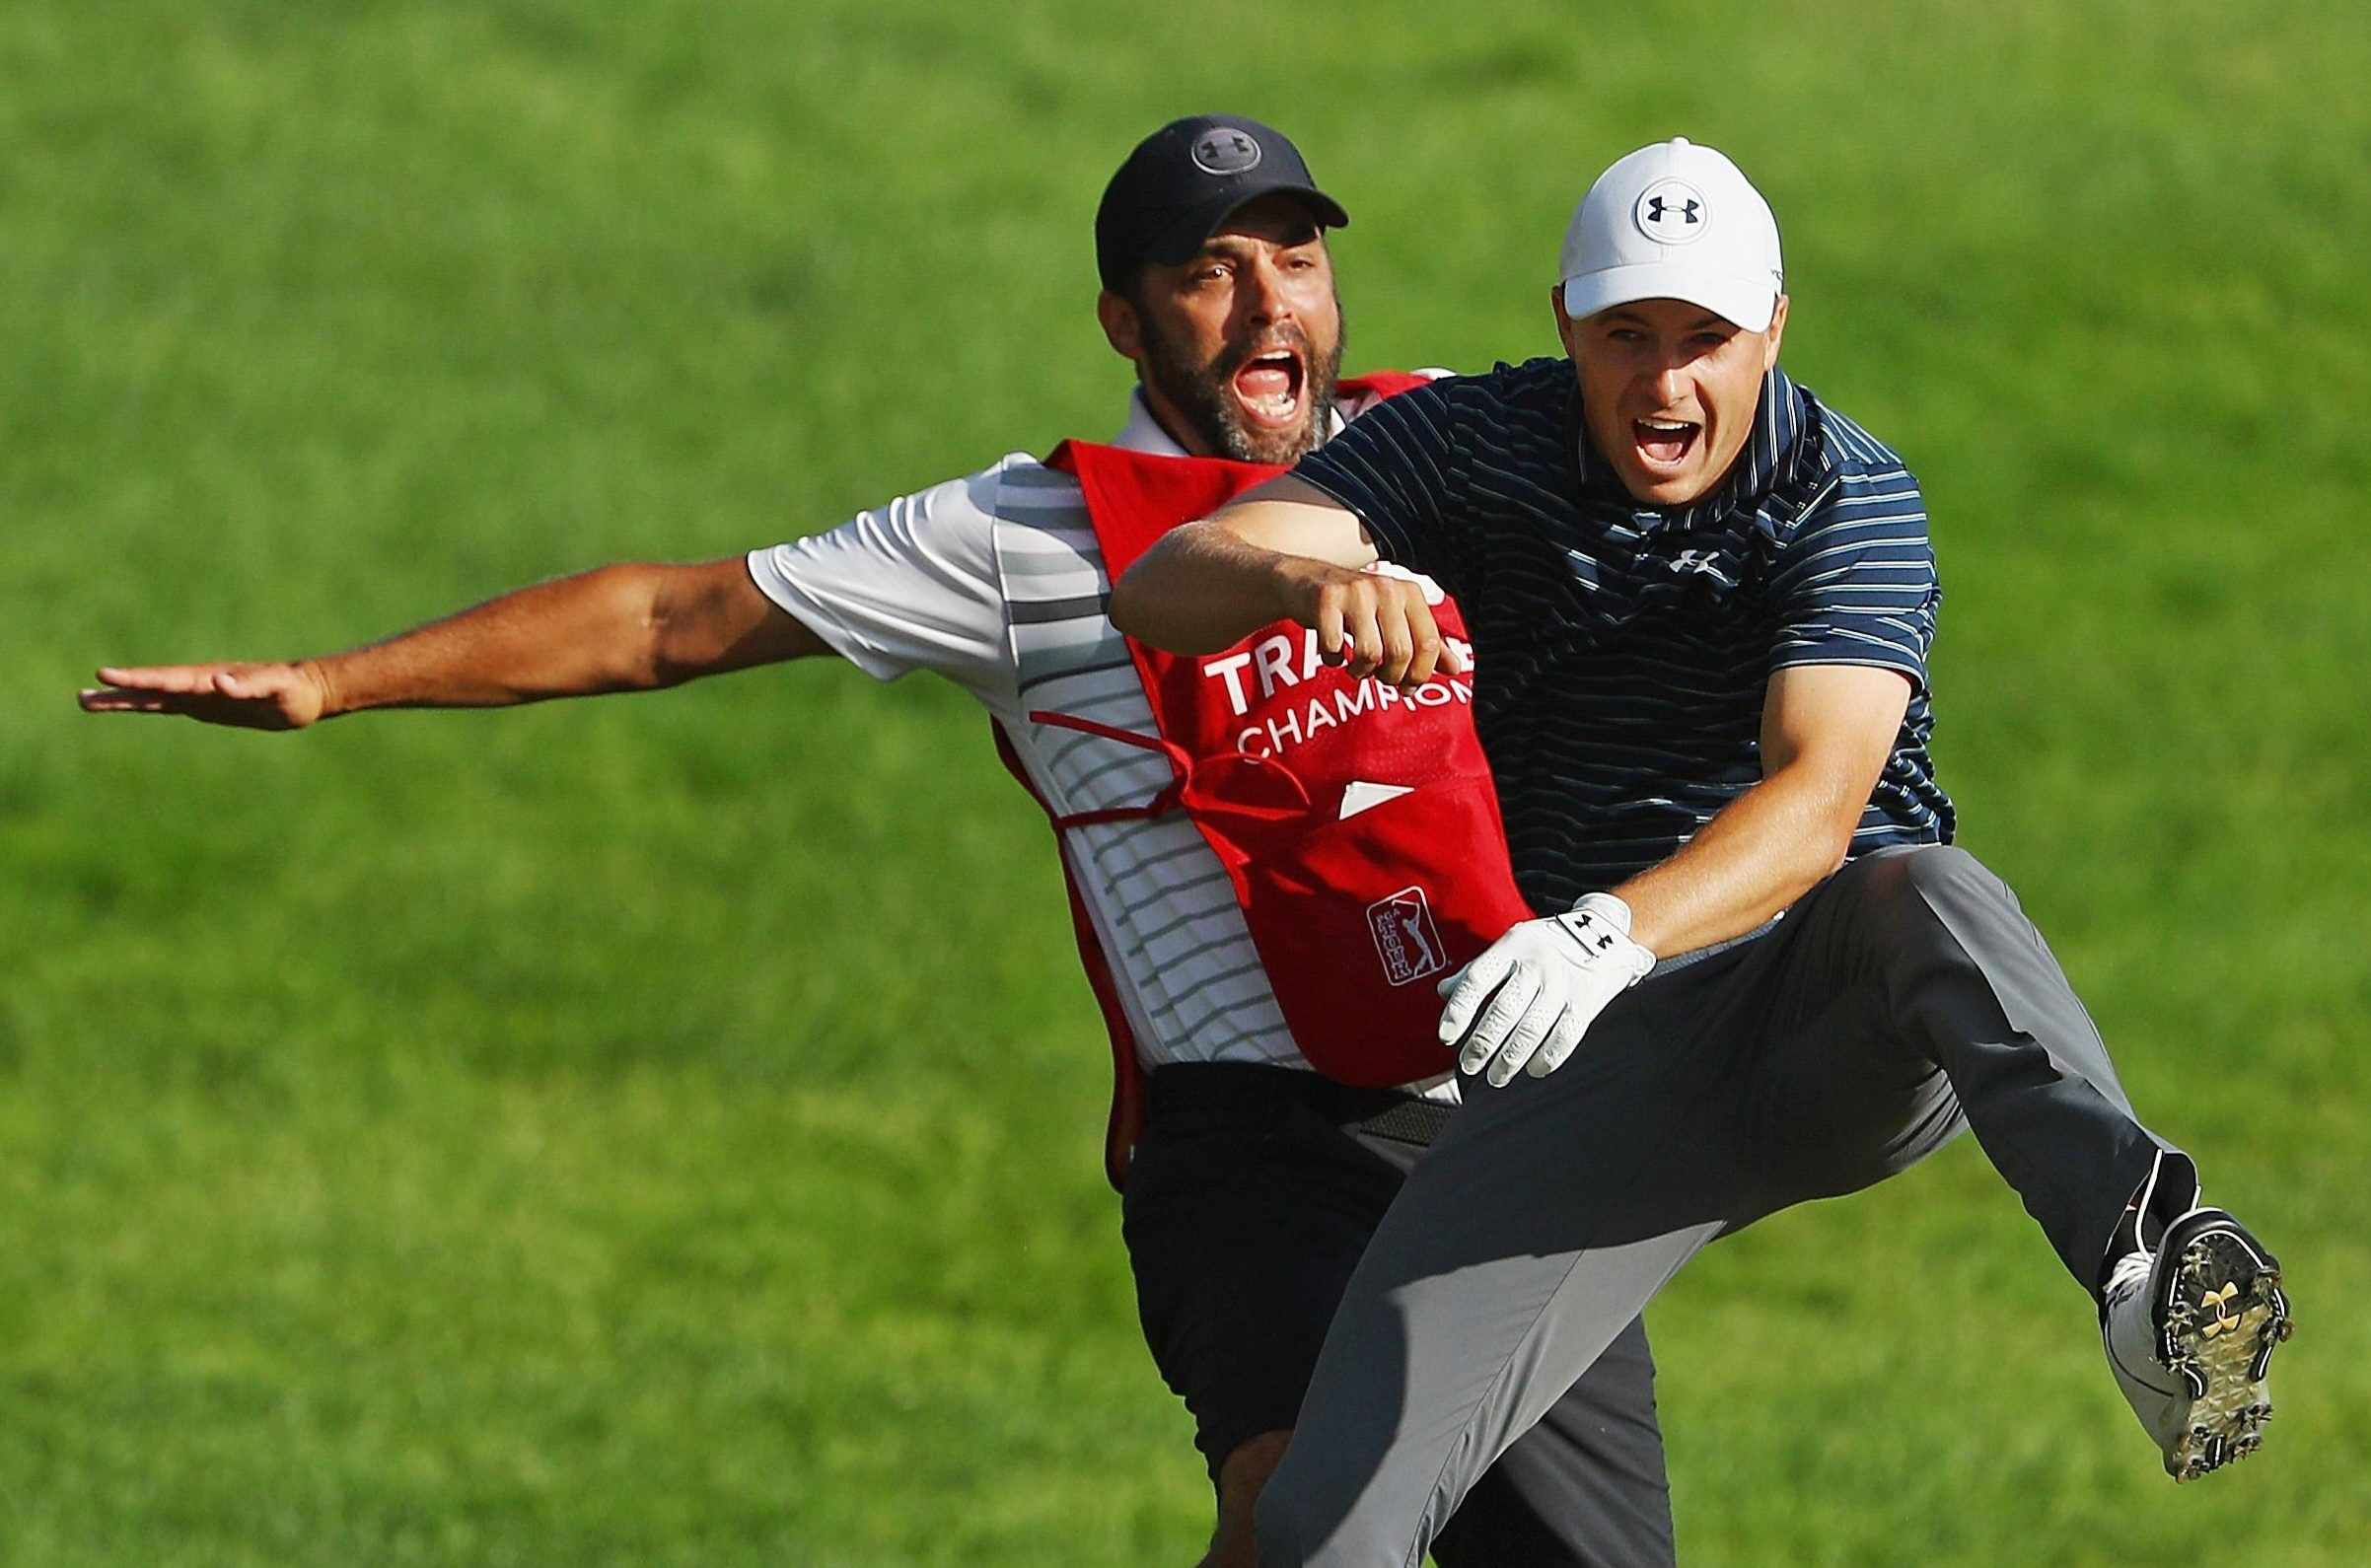 Jordan Spieth and caddy Michael Greller have formed a formidable partnership